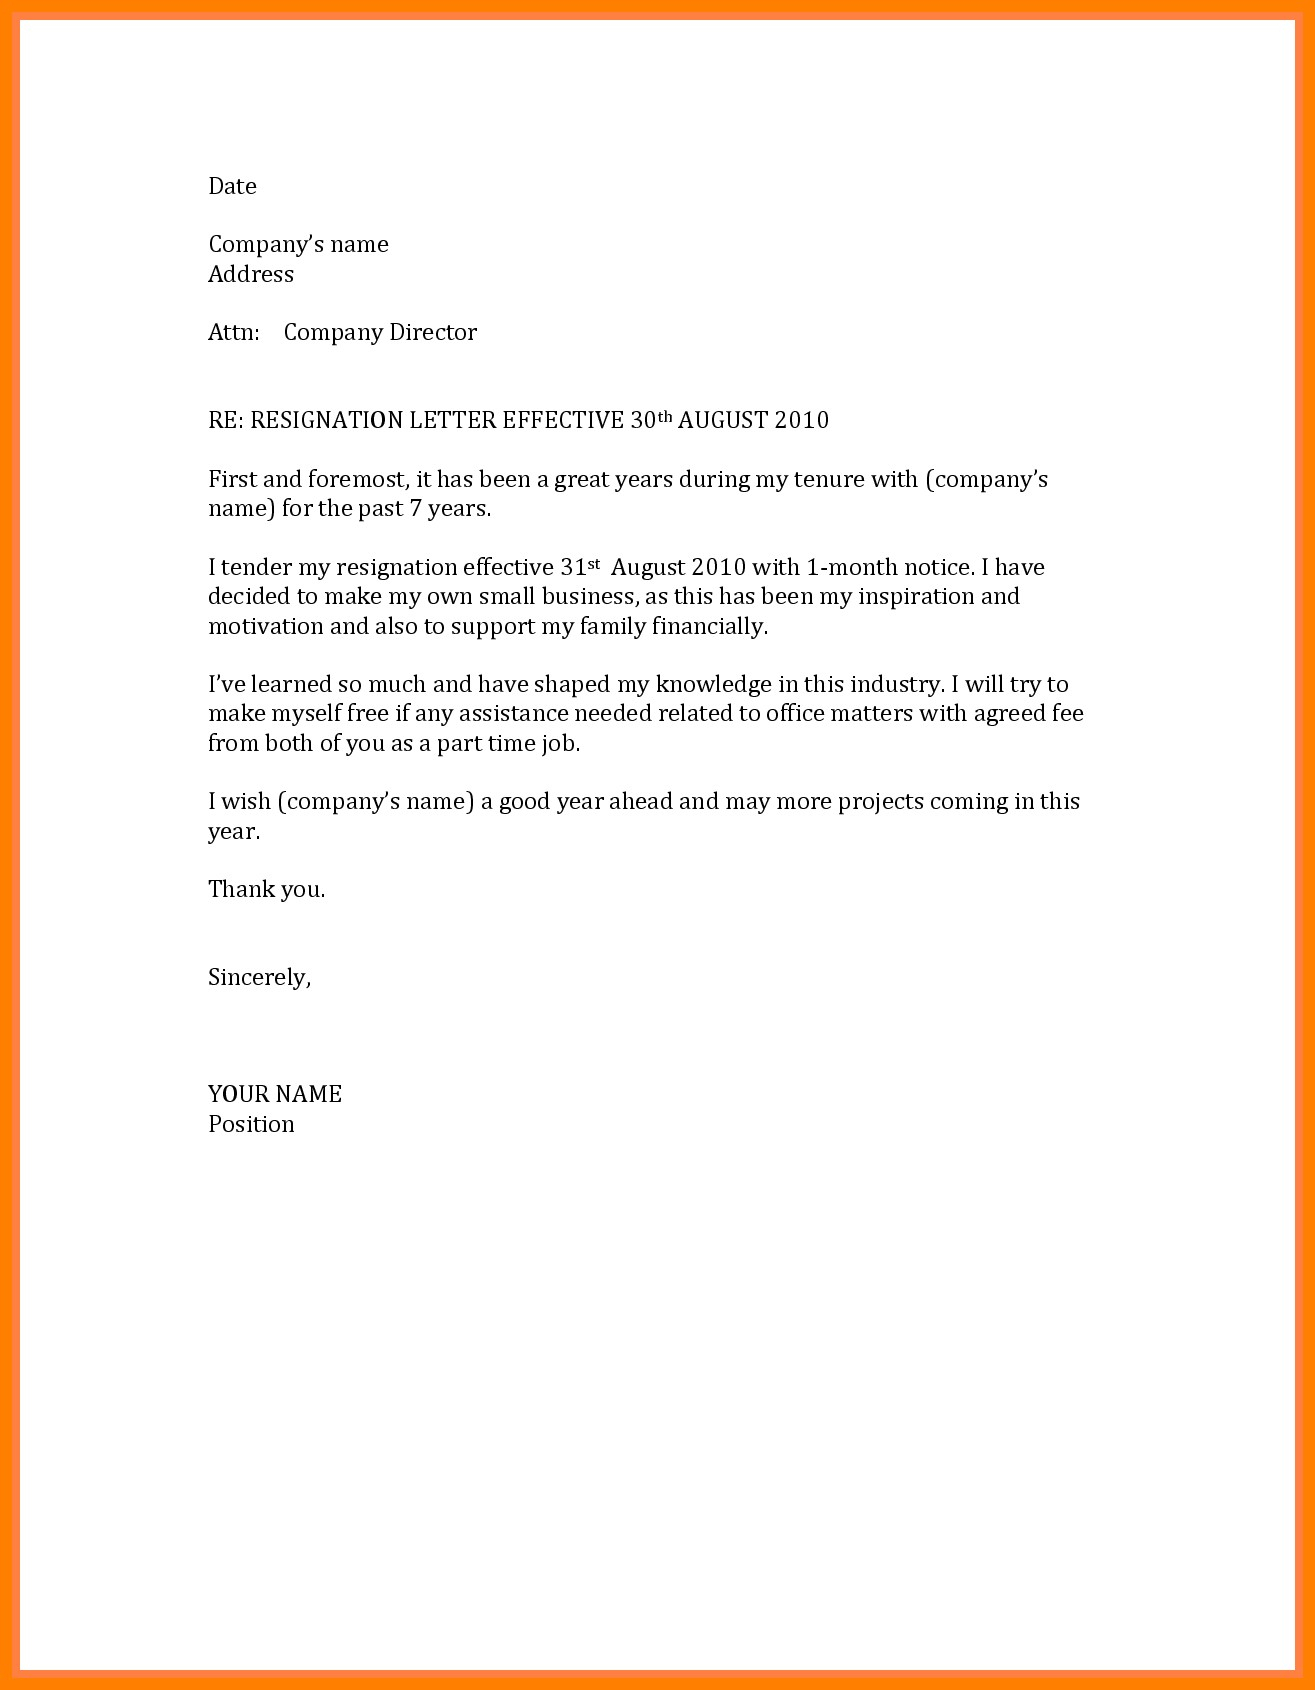 Resignation Letter Template Word - Resignation Letter New Job Opportunity Fresh Sample Job Resignation